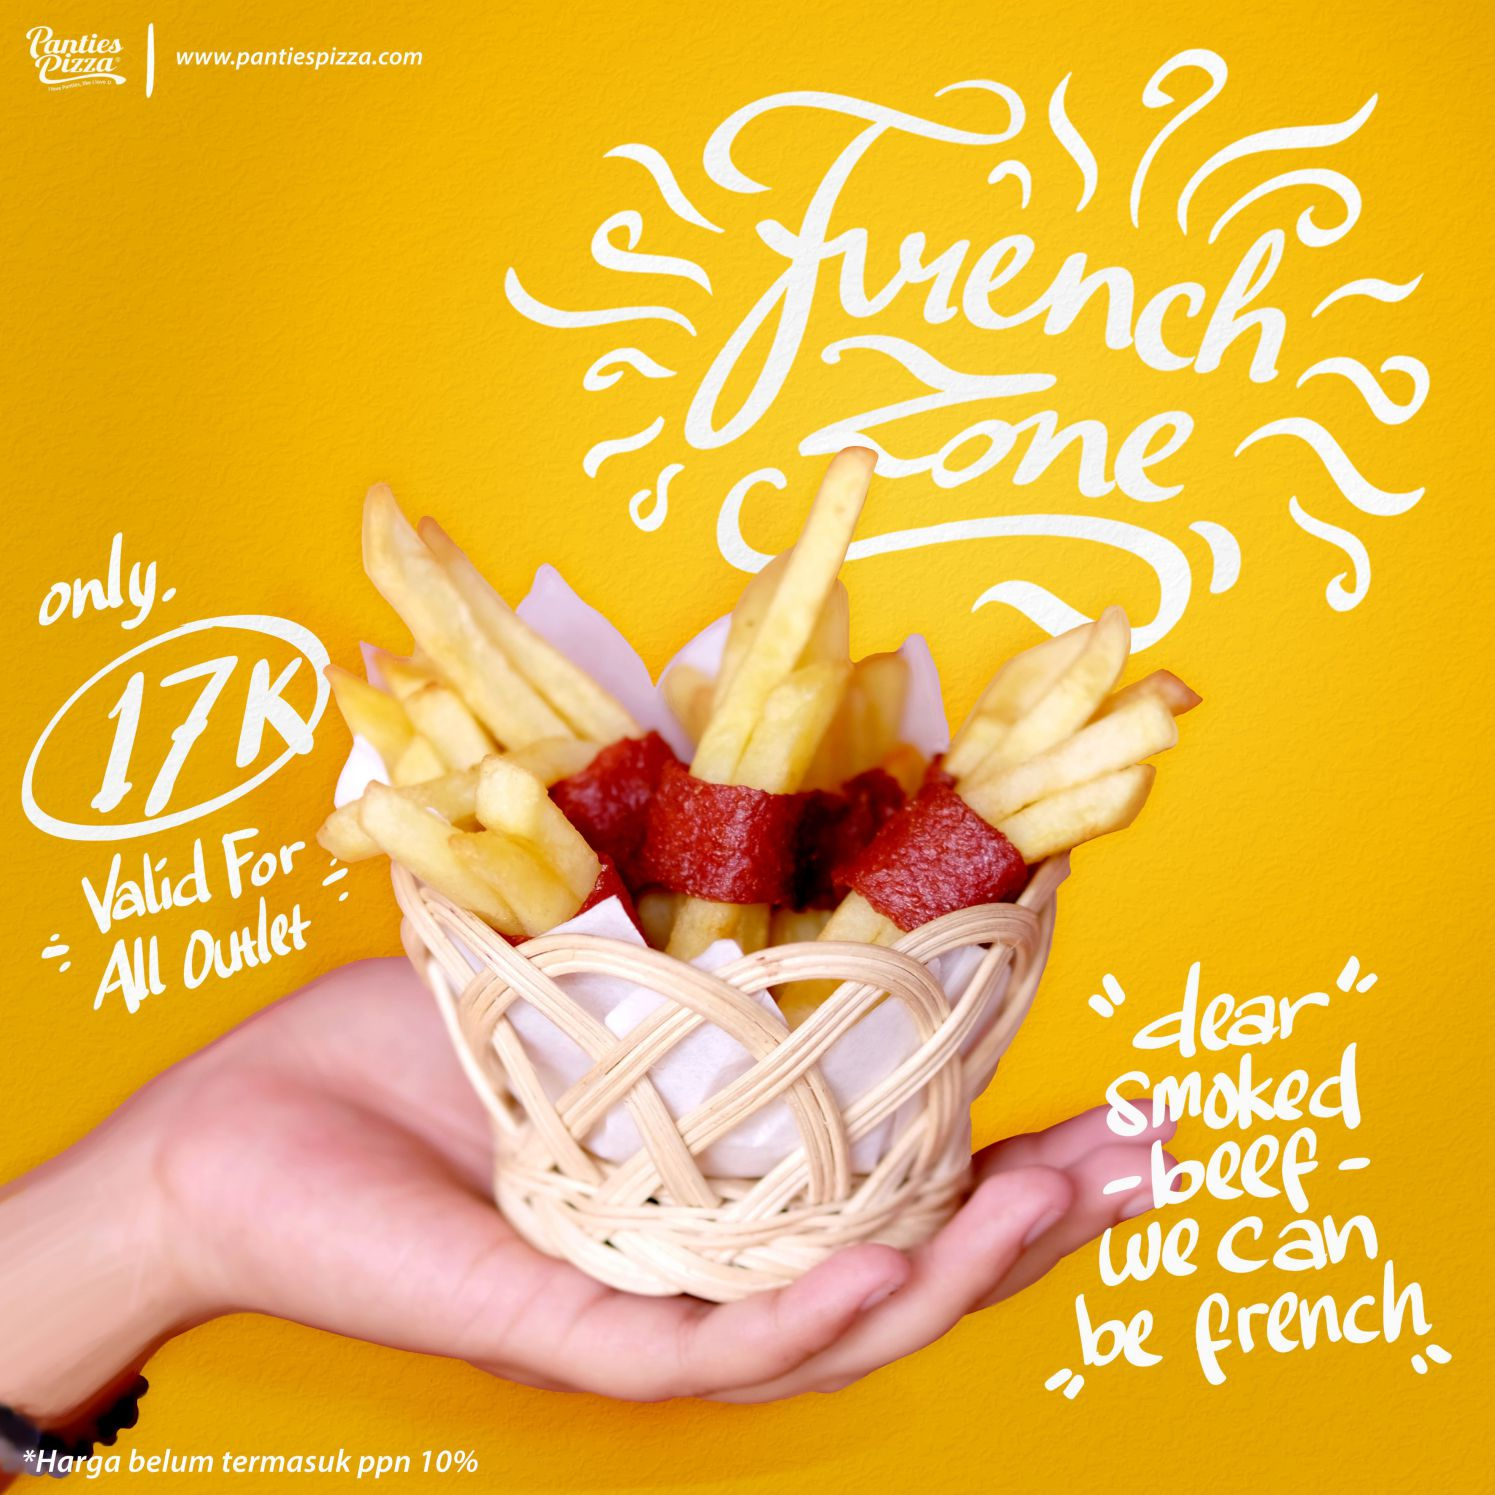 French Zone French Friesh Dengan Balutan Danging Sapi Asap Spaghecheese and French Zone Only at Panties Pizza Mobile Single Slide